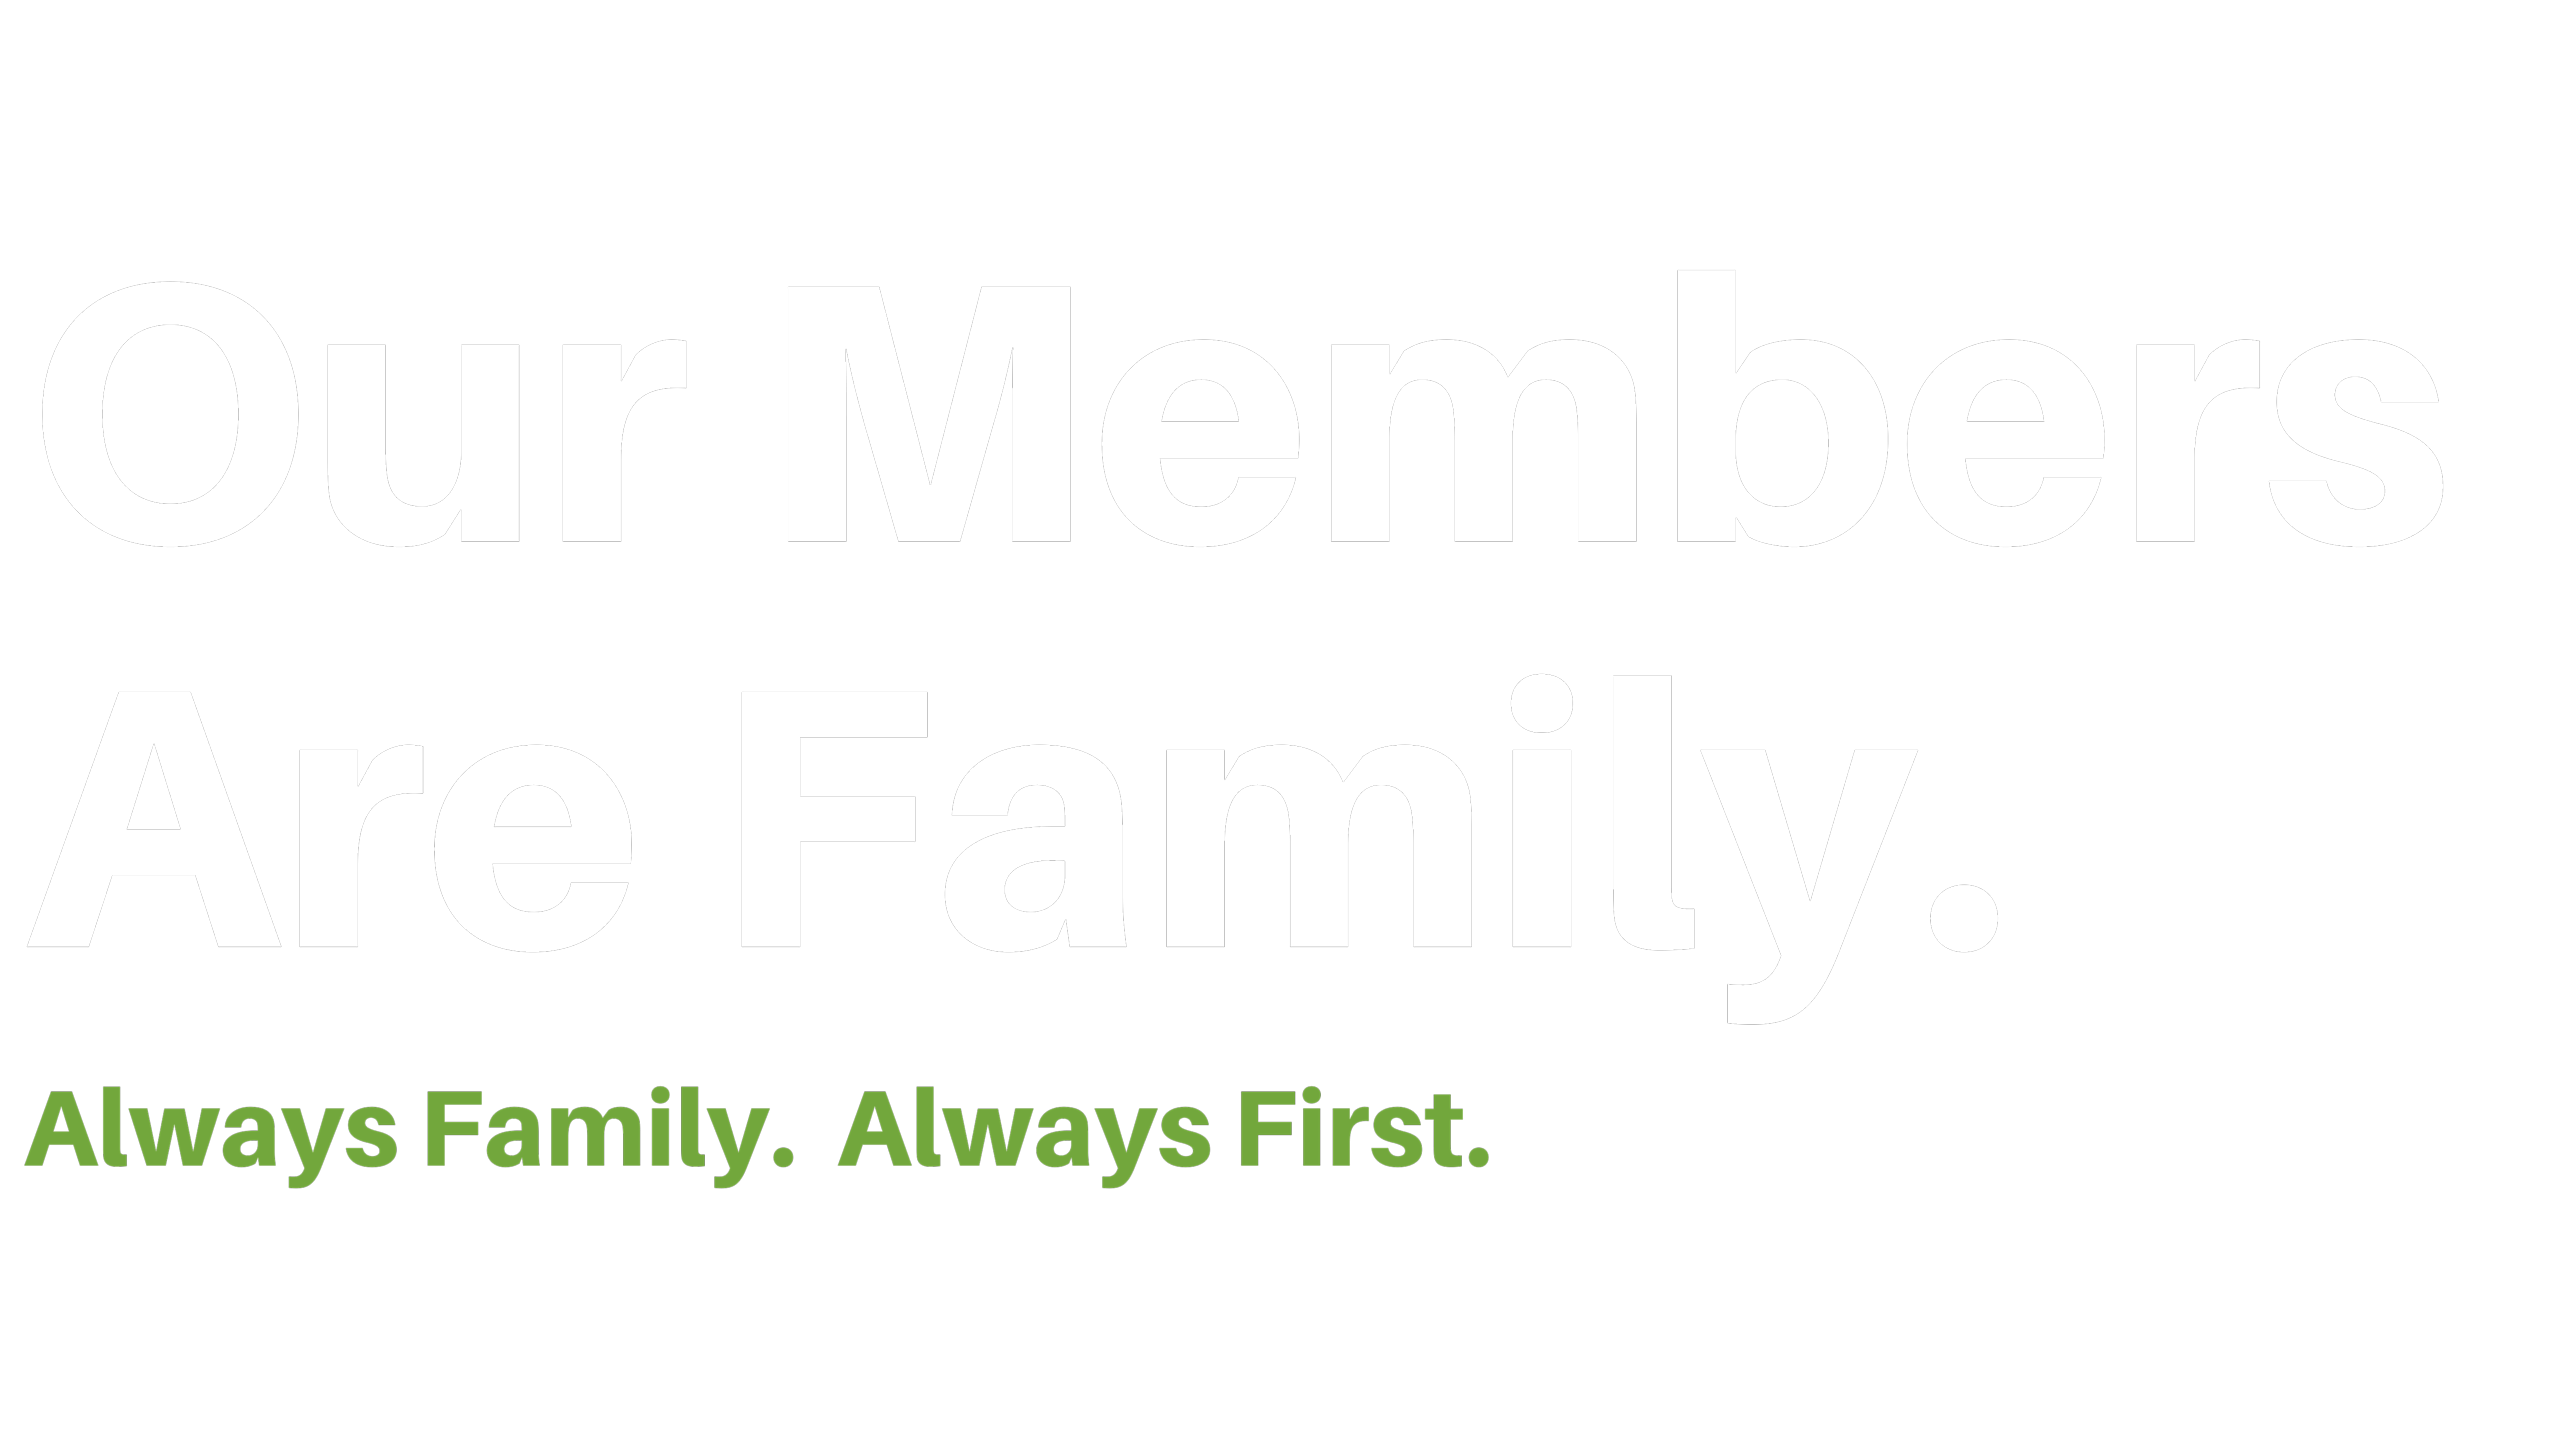 Our Members Are Family. Always Family. Always First